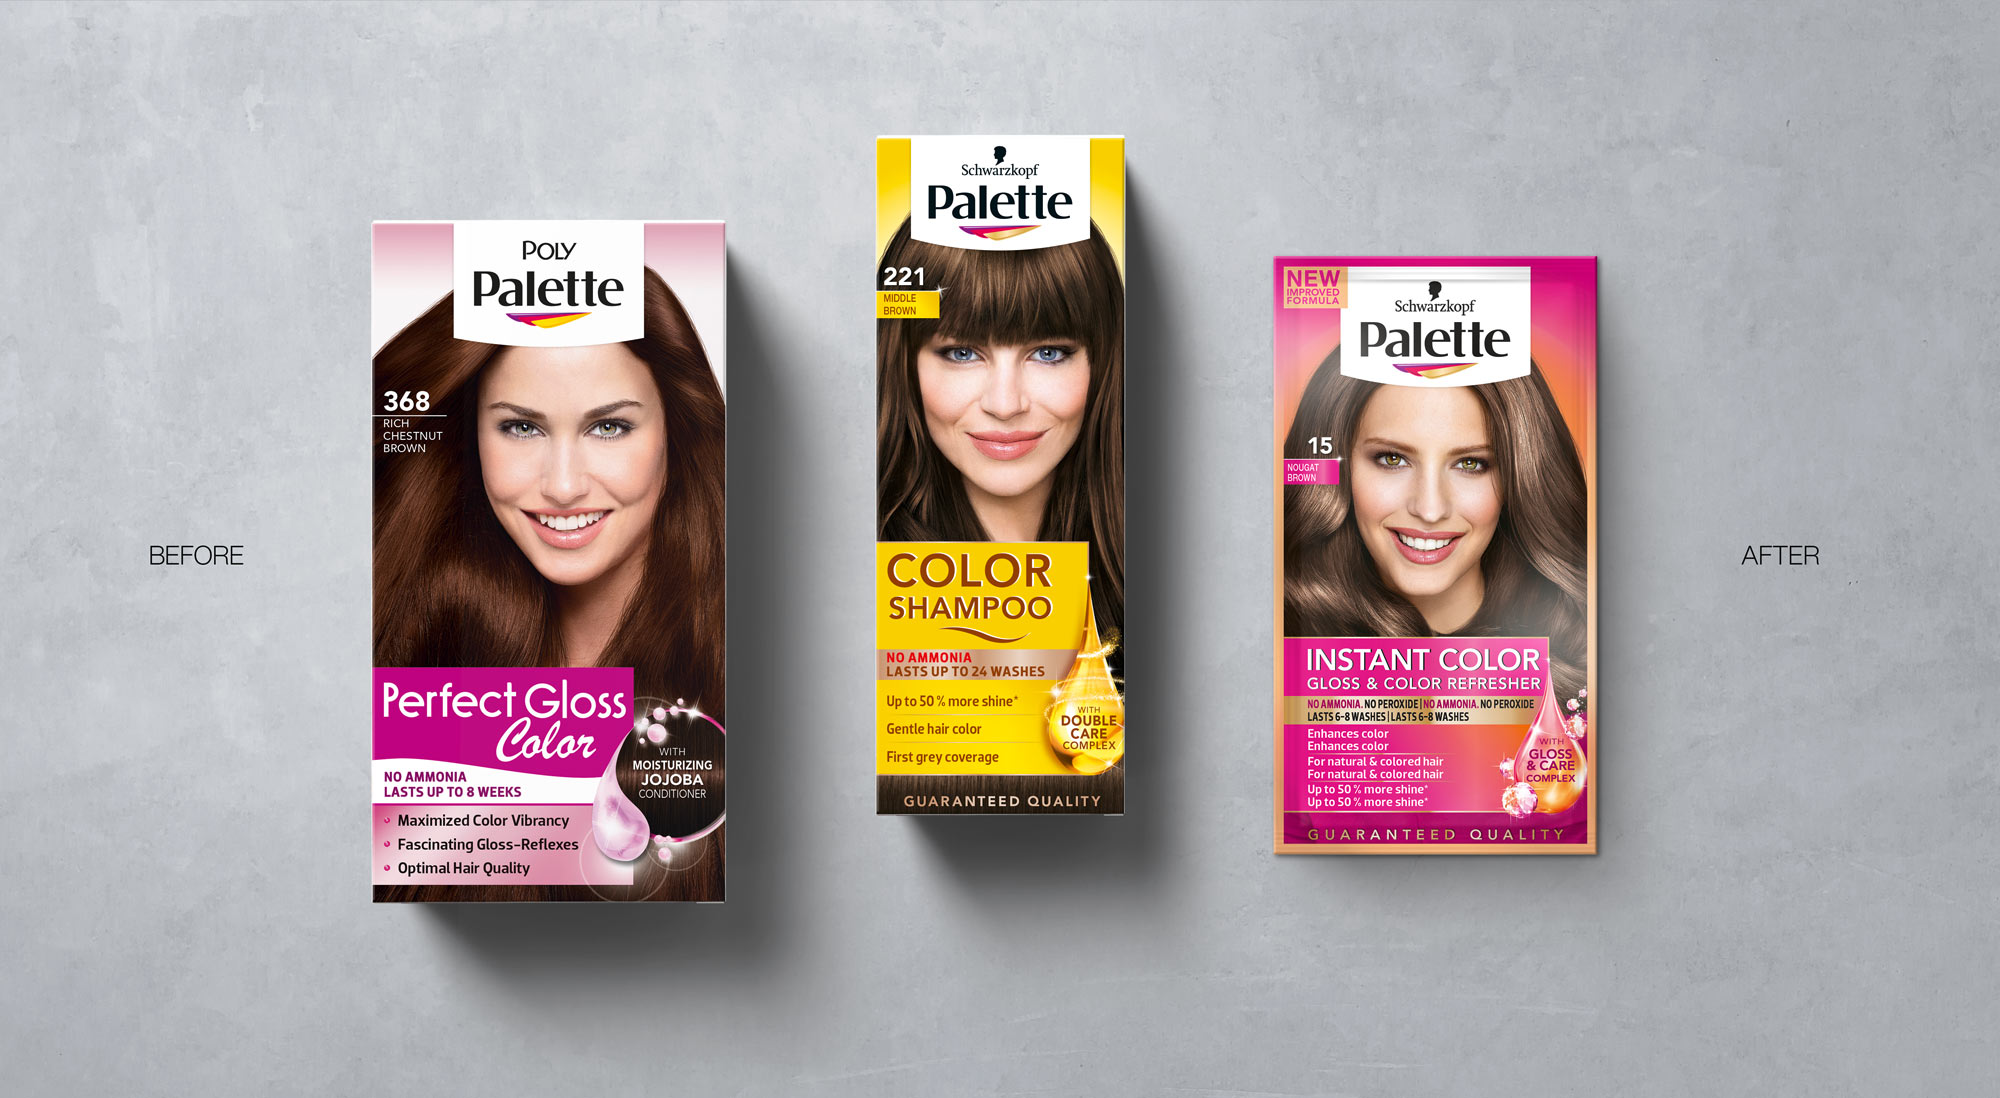 Schwarzkopf Palette Hair Coloration Packaging Designs on Concrete, Before Relaunch Design 2018